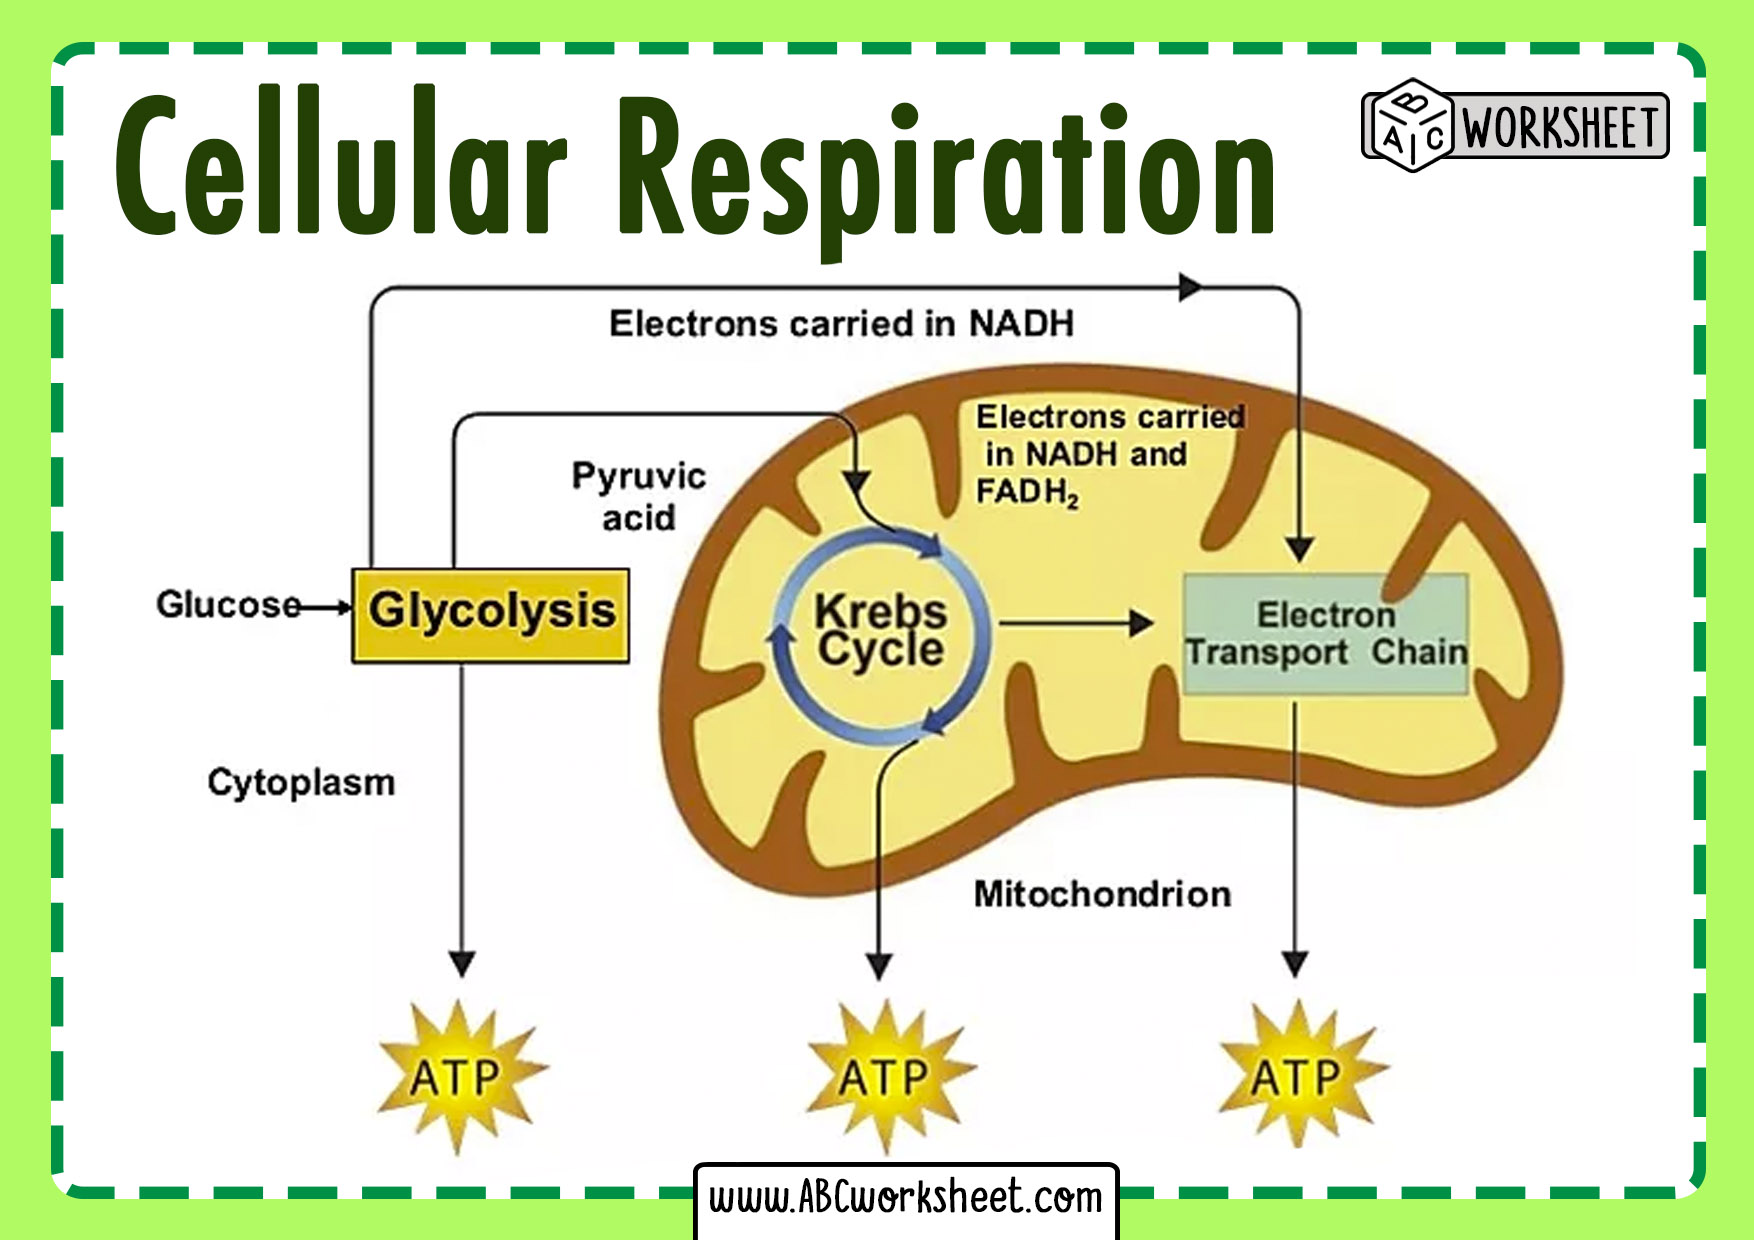 Cellular Respiration Steps